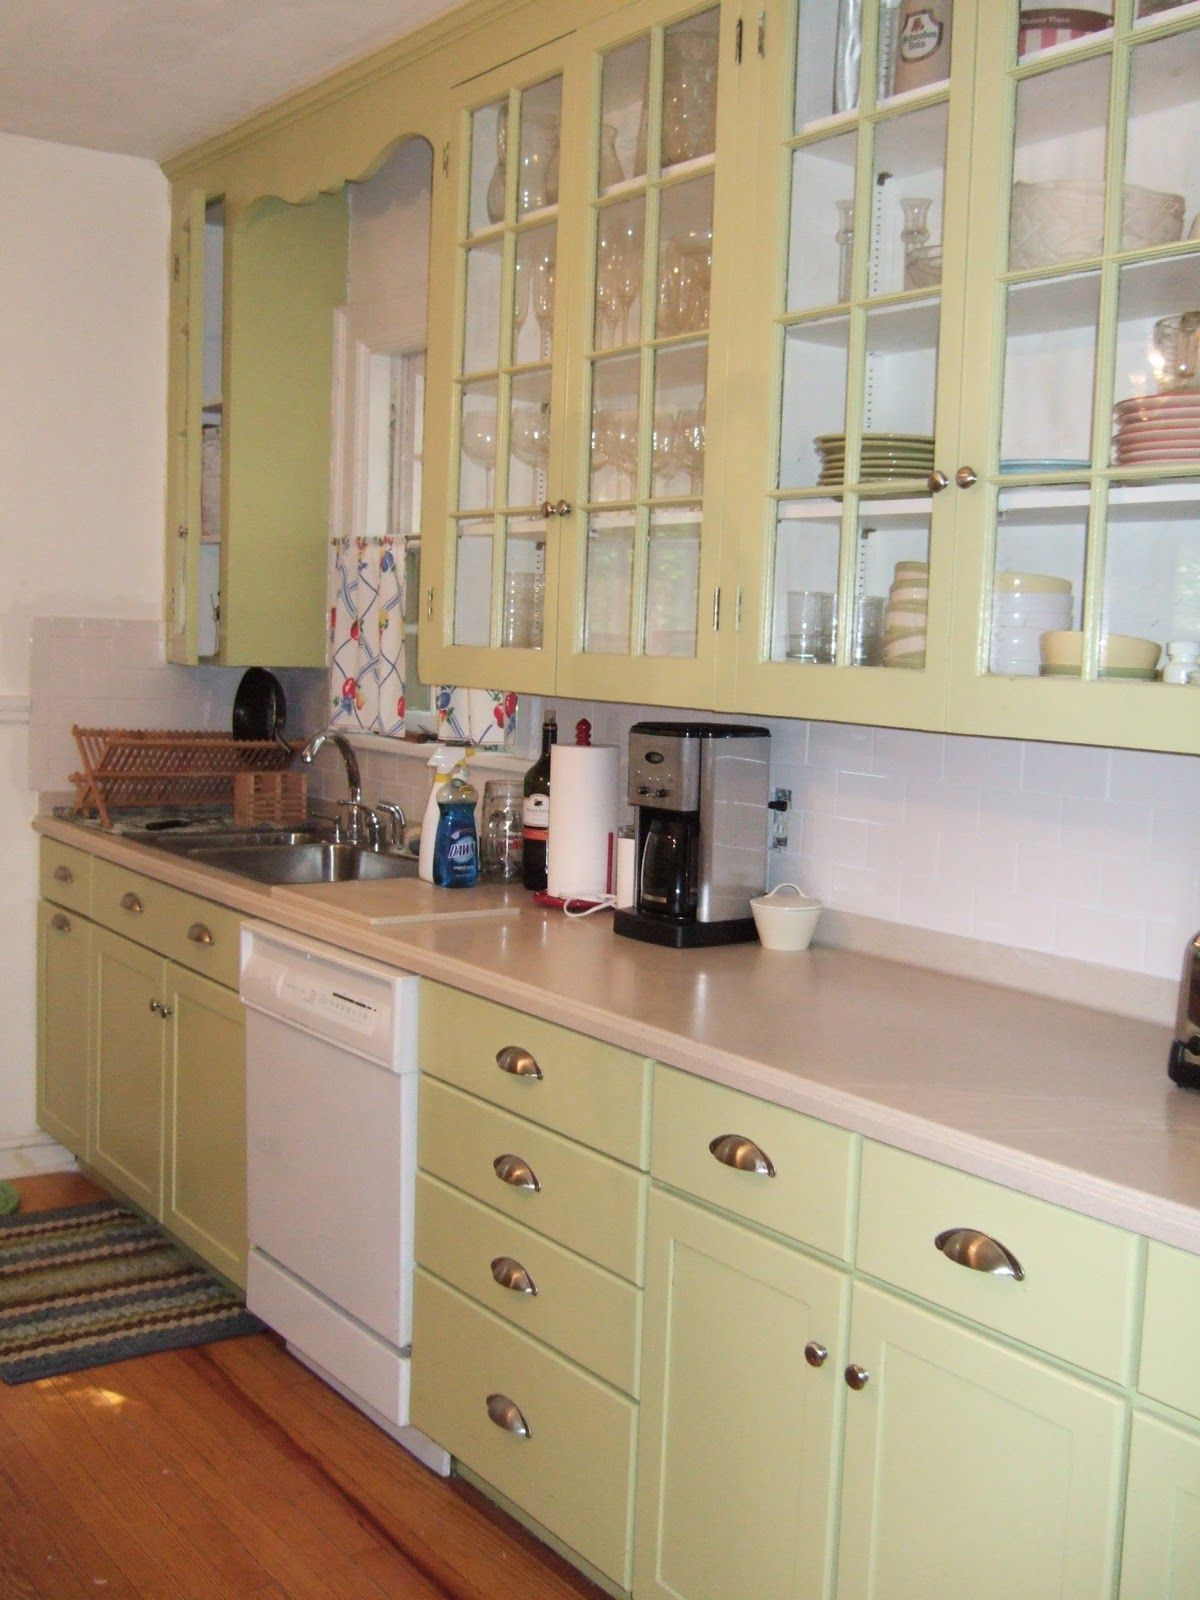 Forties Kitchen Decor   Buscar Con Google